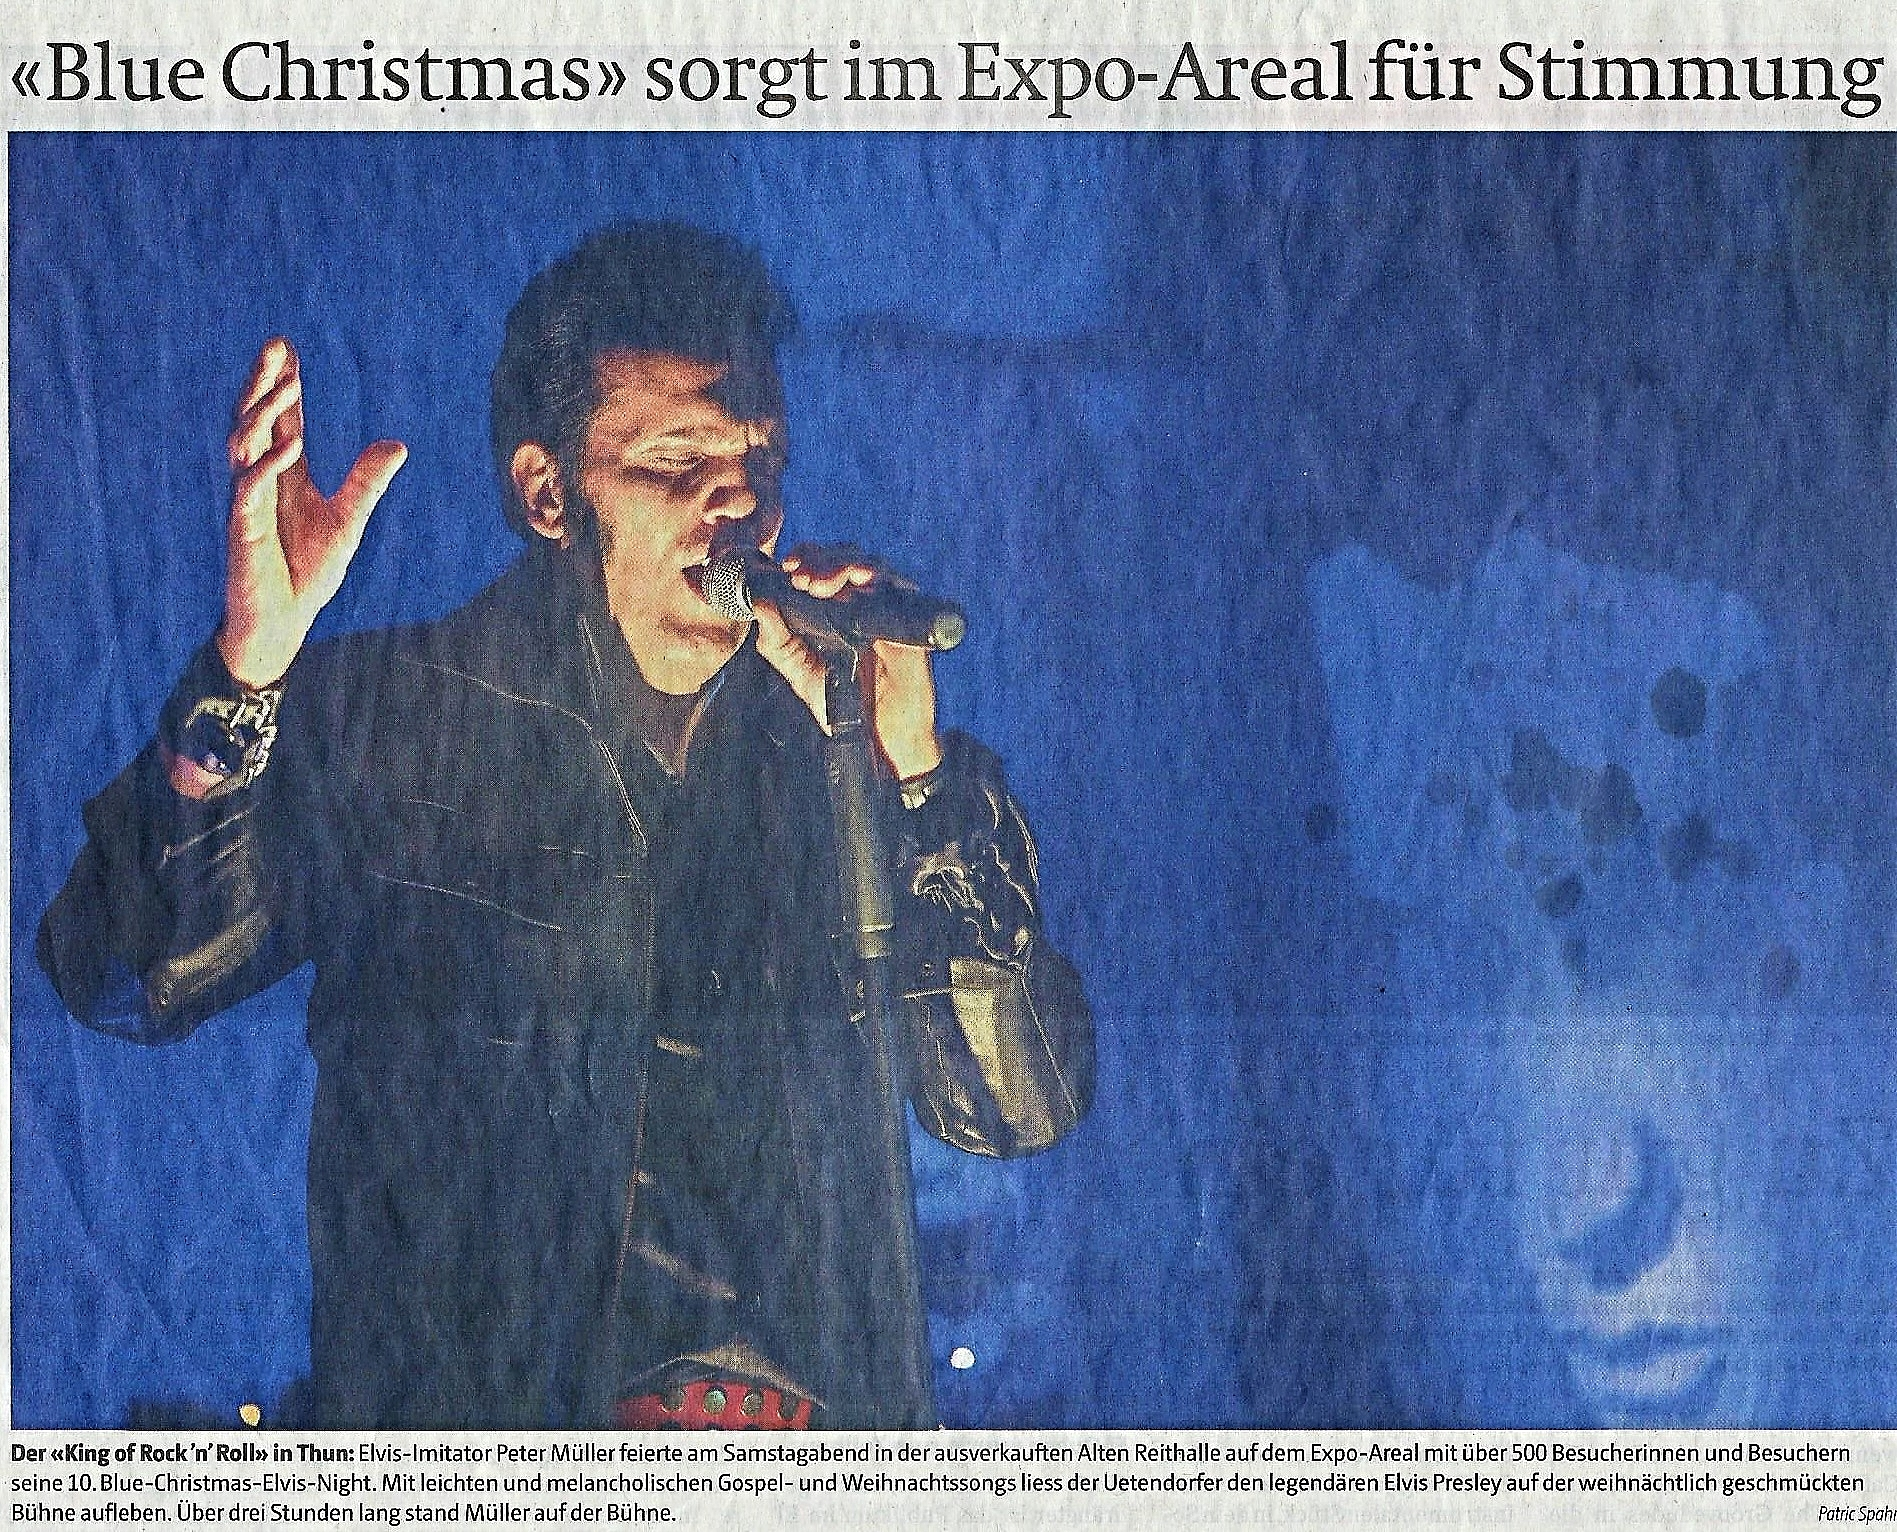 Blue Christmas Elvis Night 2016 Thuner Tagblatt mit Elvis Imitator Peter Müller